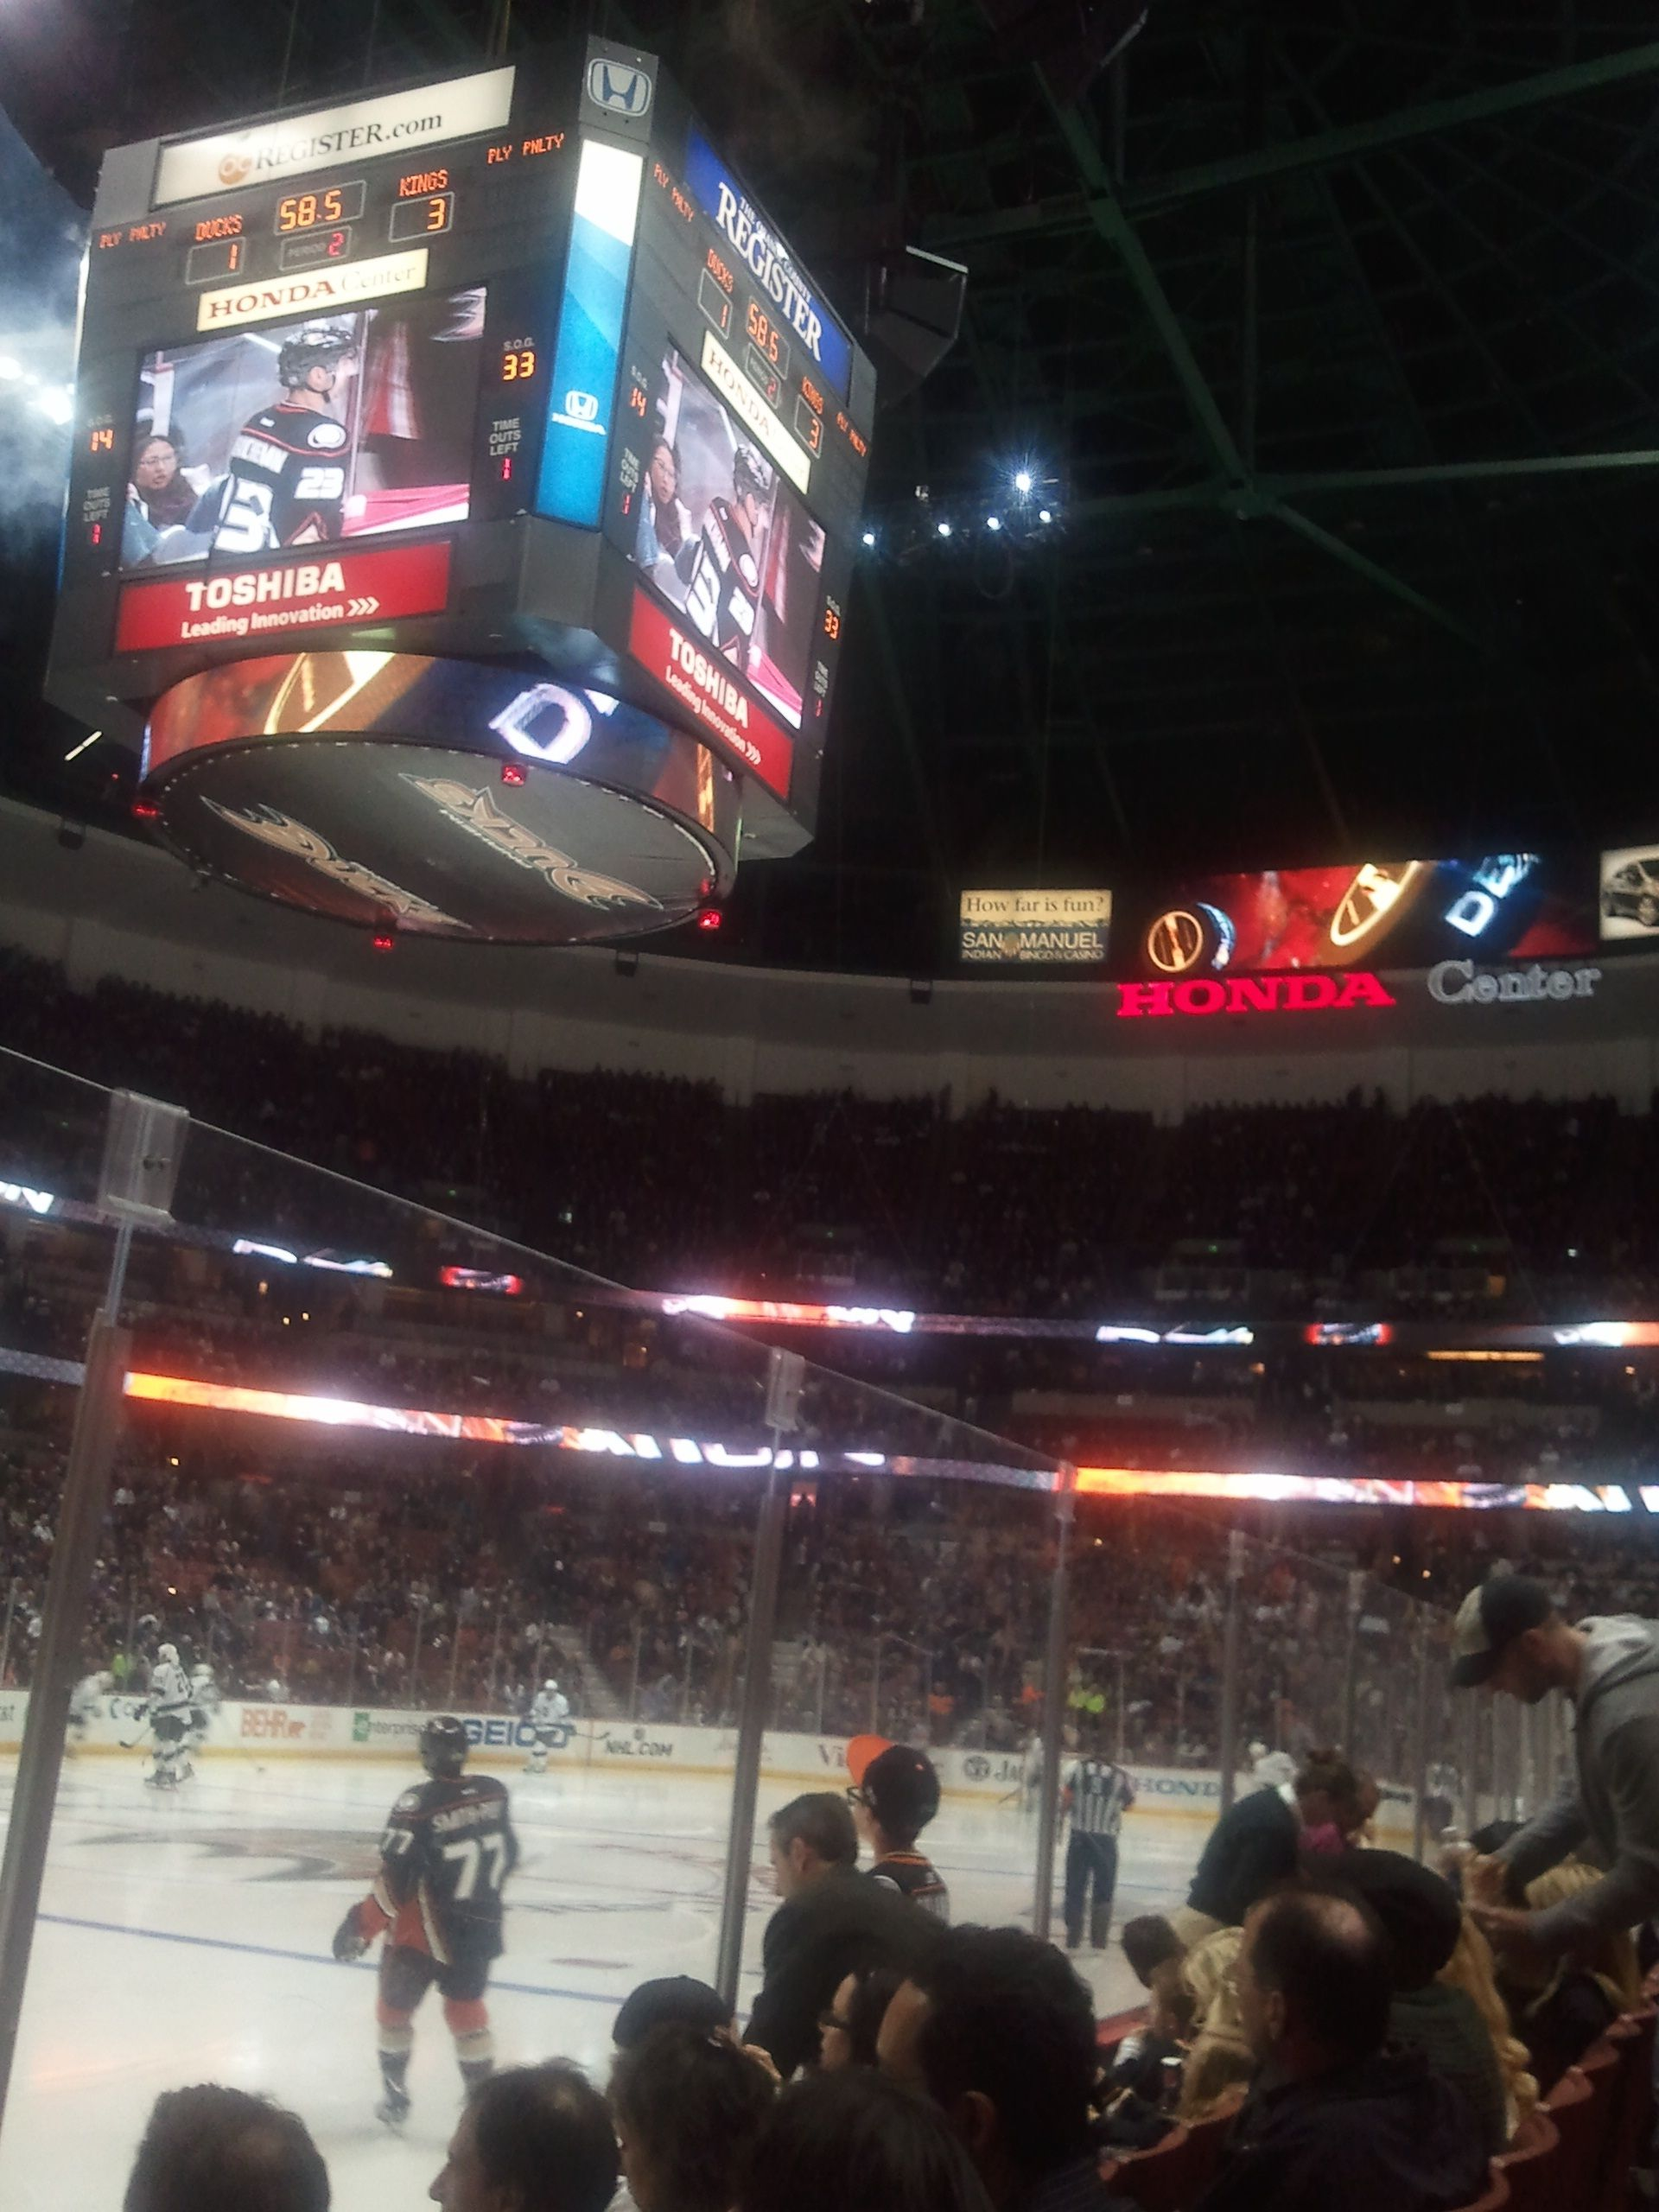 Honda Center   Anaheim, CA March 16, 2012 Los Angeles Kings Vs. Anaheim  Ducks. We Were There U003d)